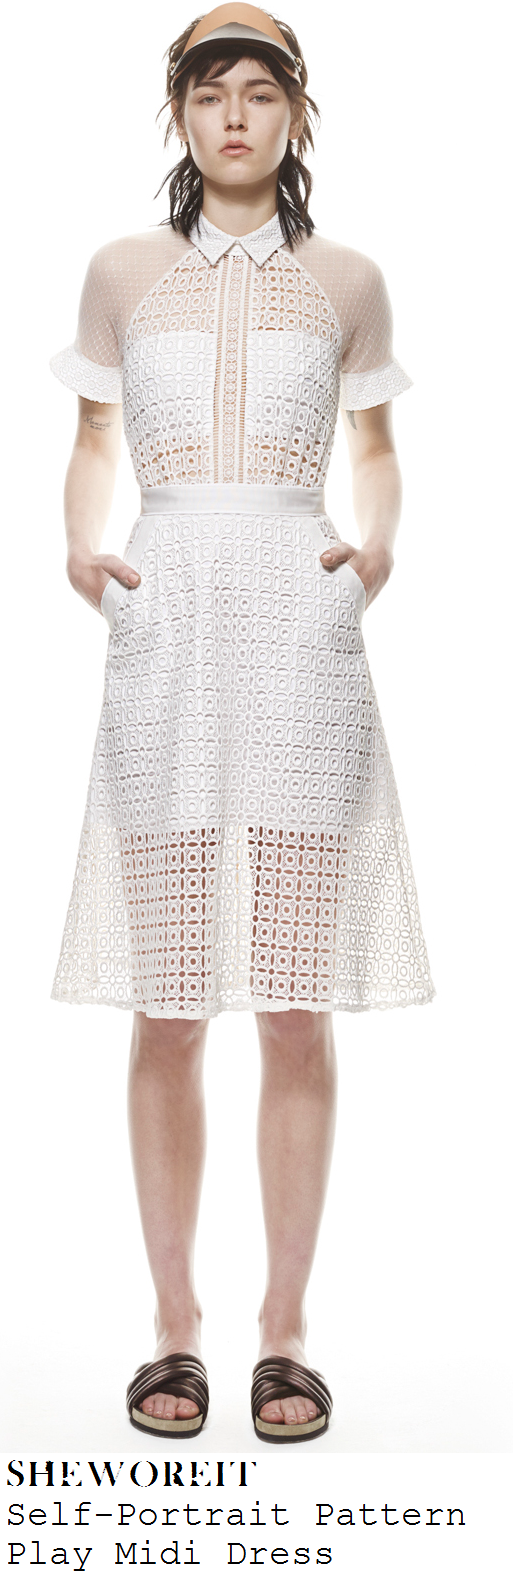 laura-whitmore-white-short-sleeve-sheer-mesh-broderie-anglaise-lace-collared-dress-get-me-out-of-here-now